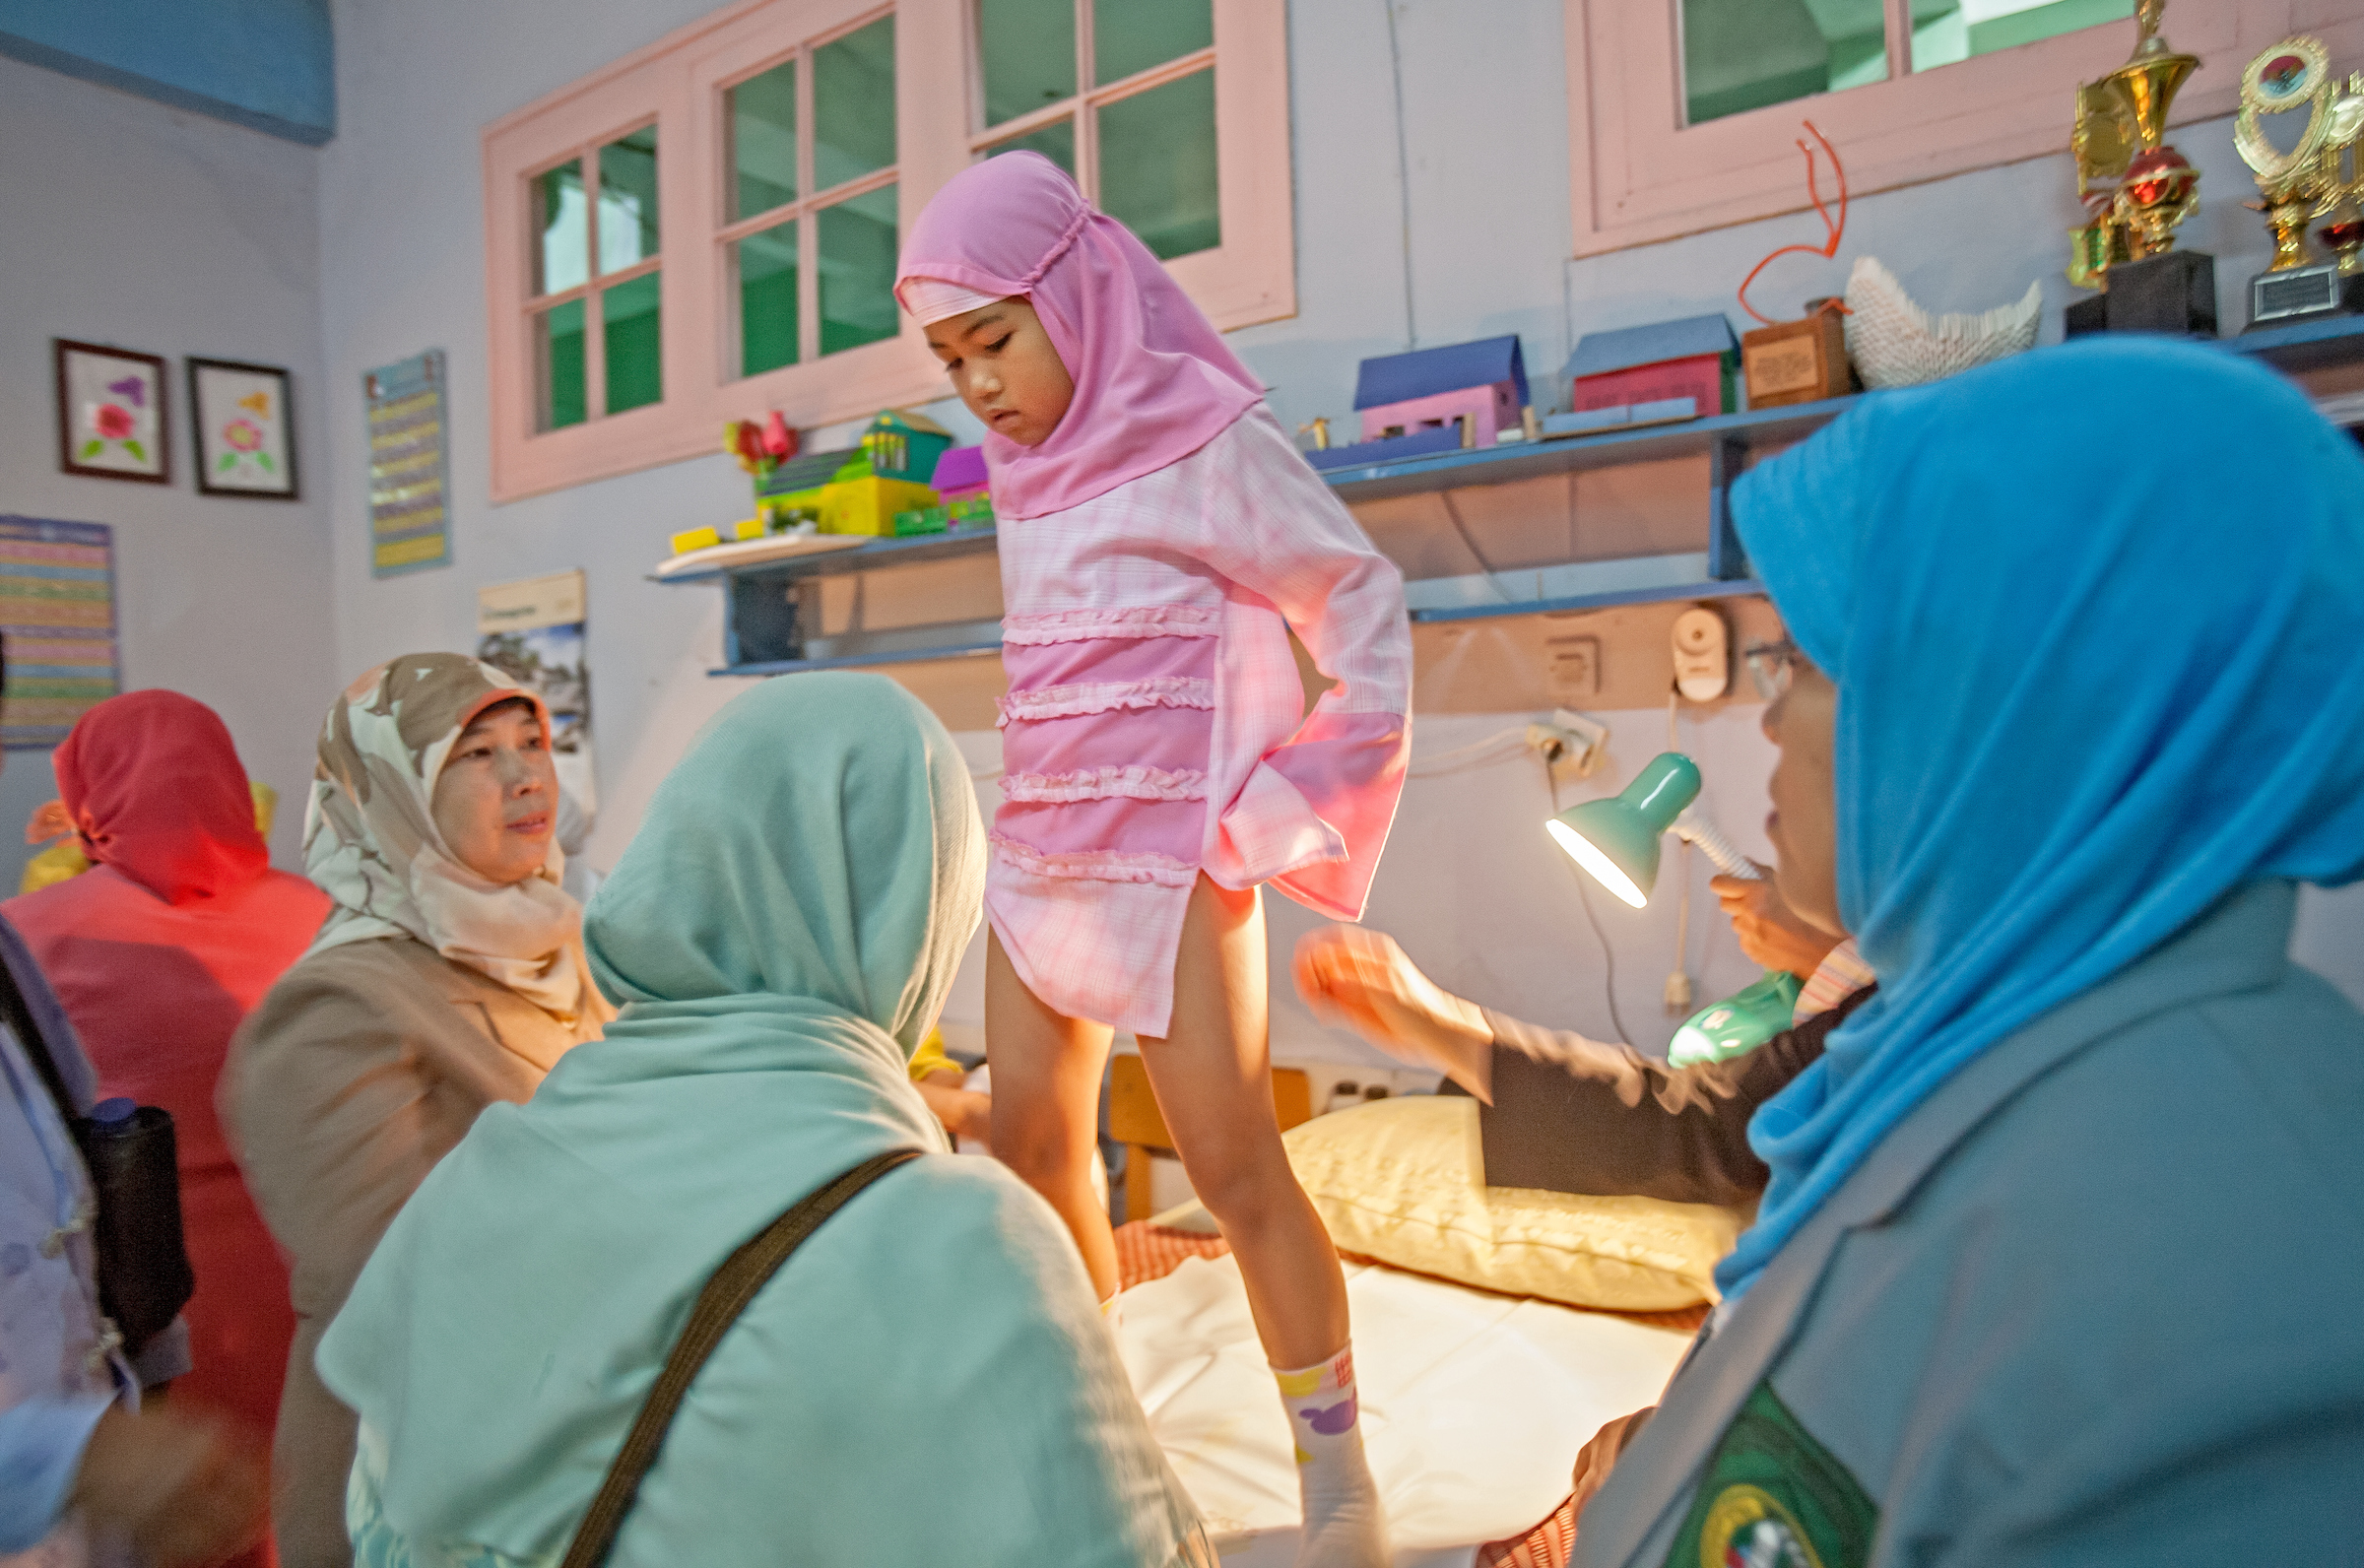 A young girl hesitates as she is prepared to be cut in Bandung, Indonesia, where each spring, parents bring their girls to an emptied-out school for a mass circumcision.